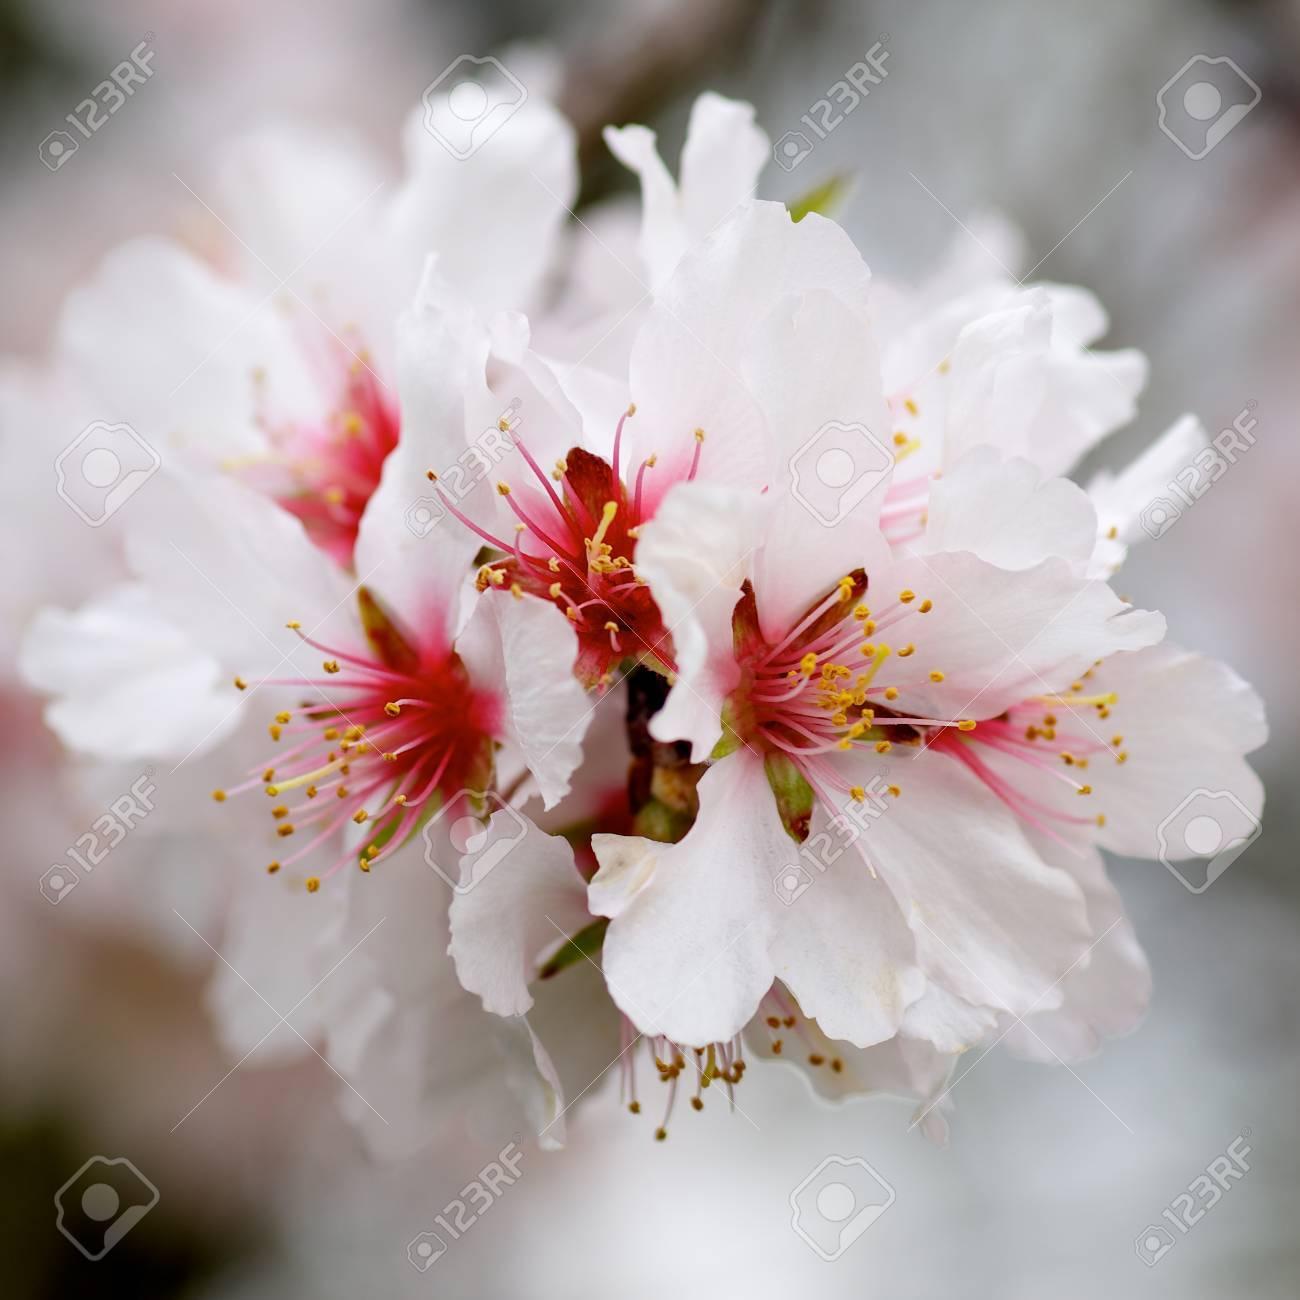 beauty white and red cherry blossoms on blurred cherry tree branches